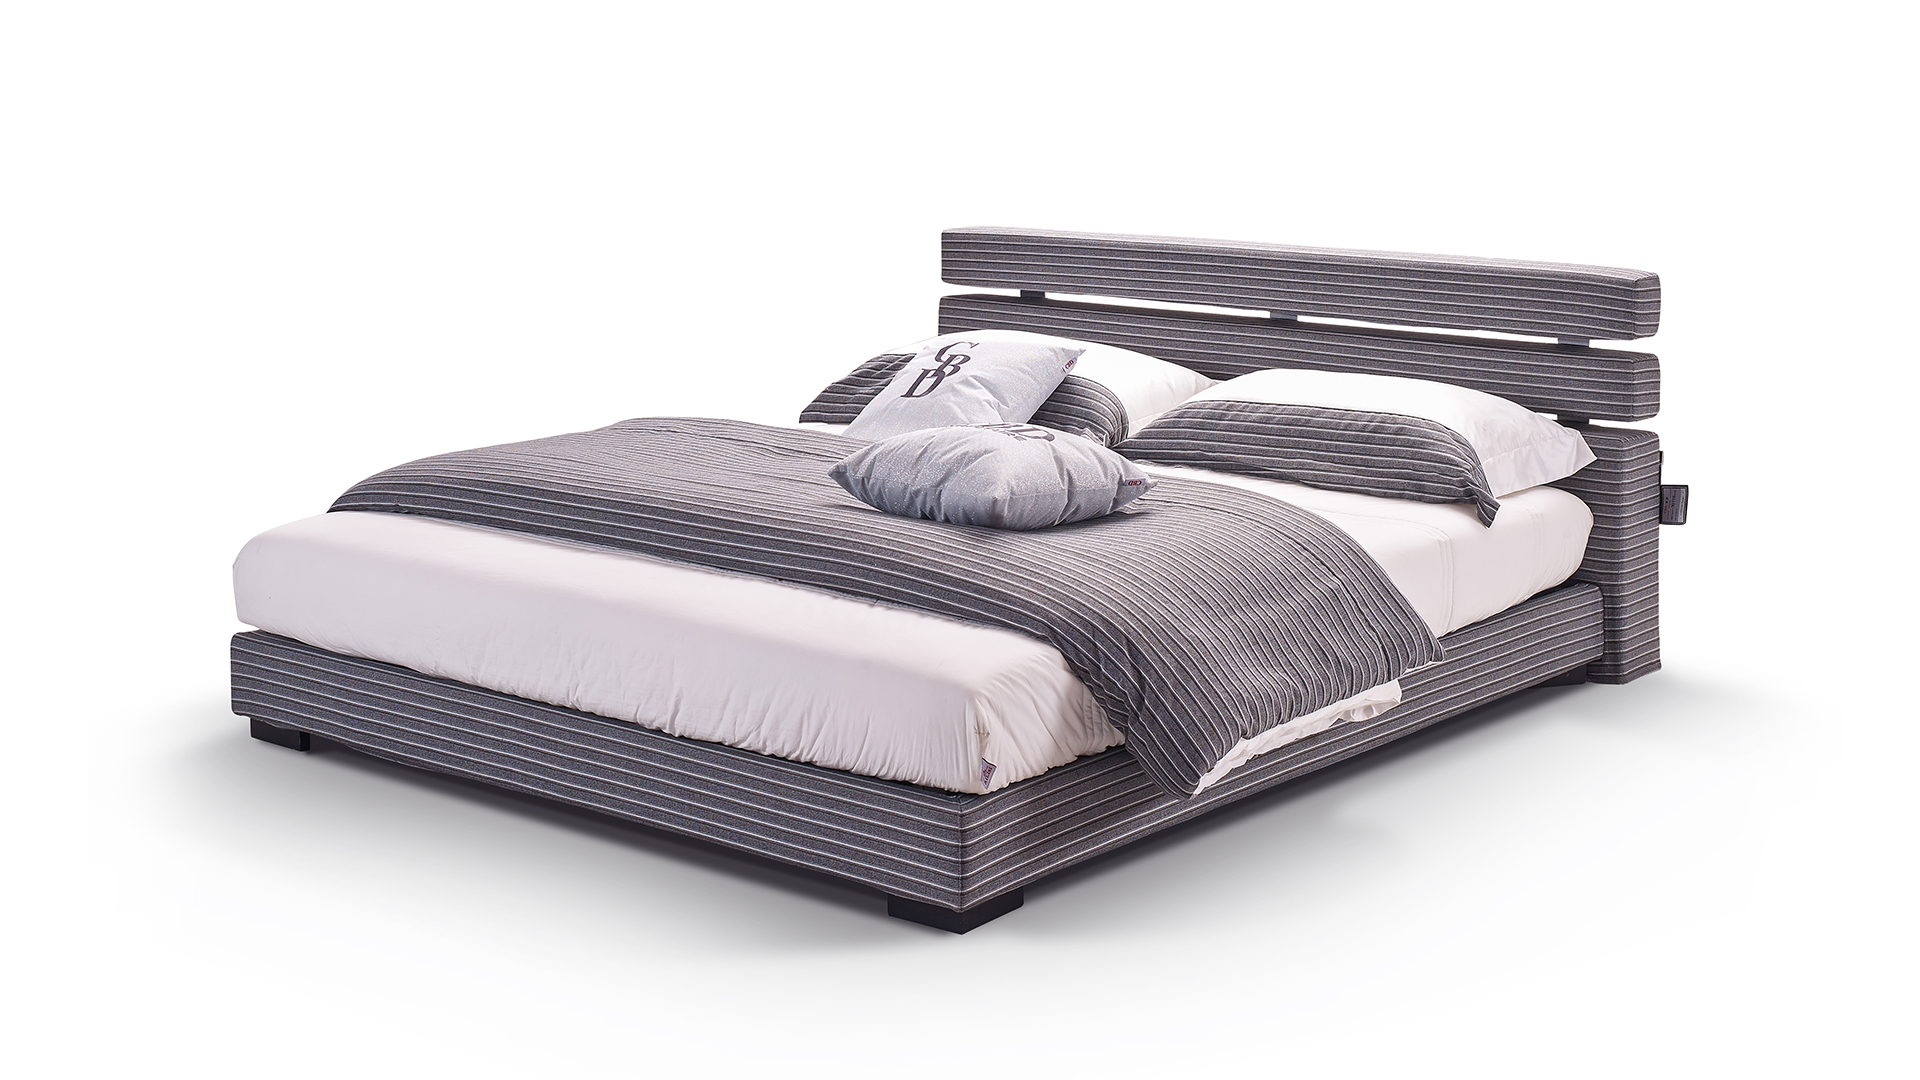 <p><strong>description:</strong></p><p>*bedframe with the 3D slats or motion;    </p><p>*washable fabric cover                            </p><p>*Available in other Upholstery By Special Order</p><p><br/></p>